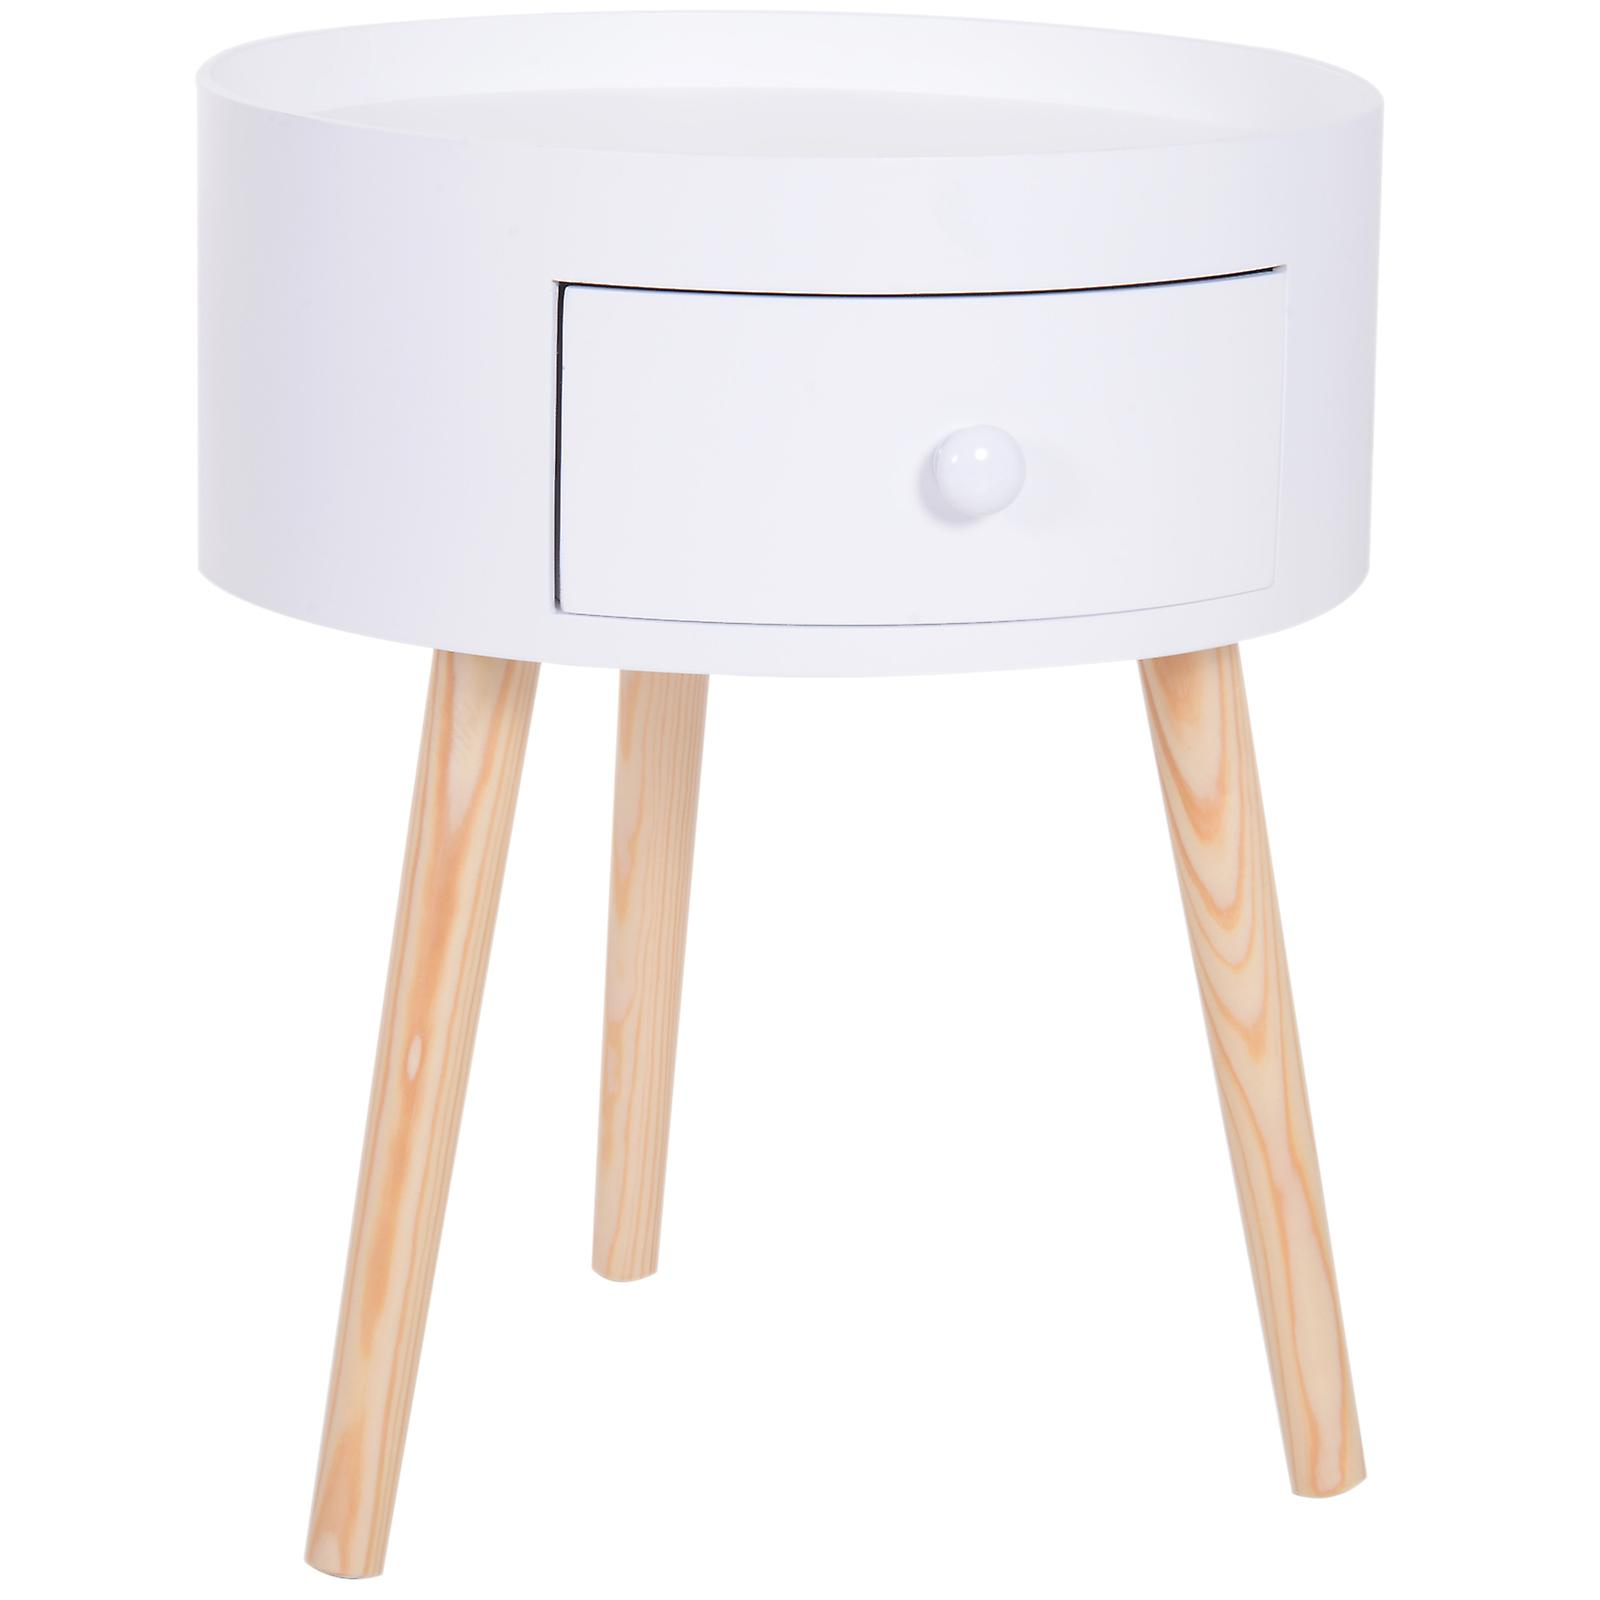 Picture of: Homcom Modern Round Coffee Table Wooden Side Table Living Room Storage Unit W Drawer Wood Leg White Fruugo Uk